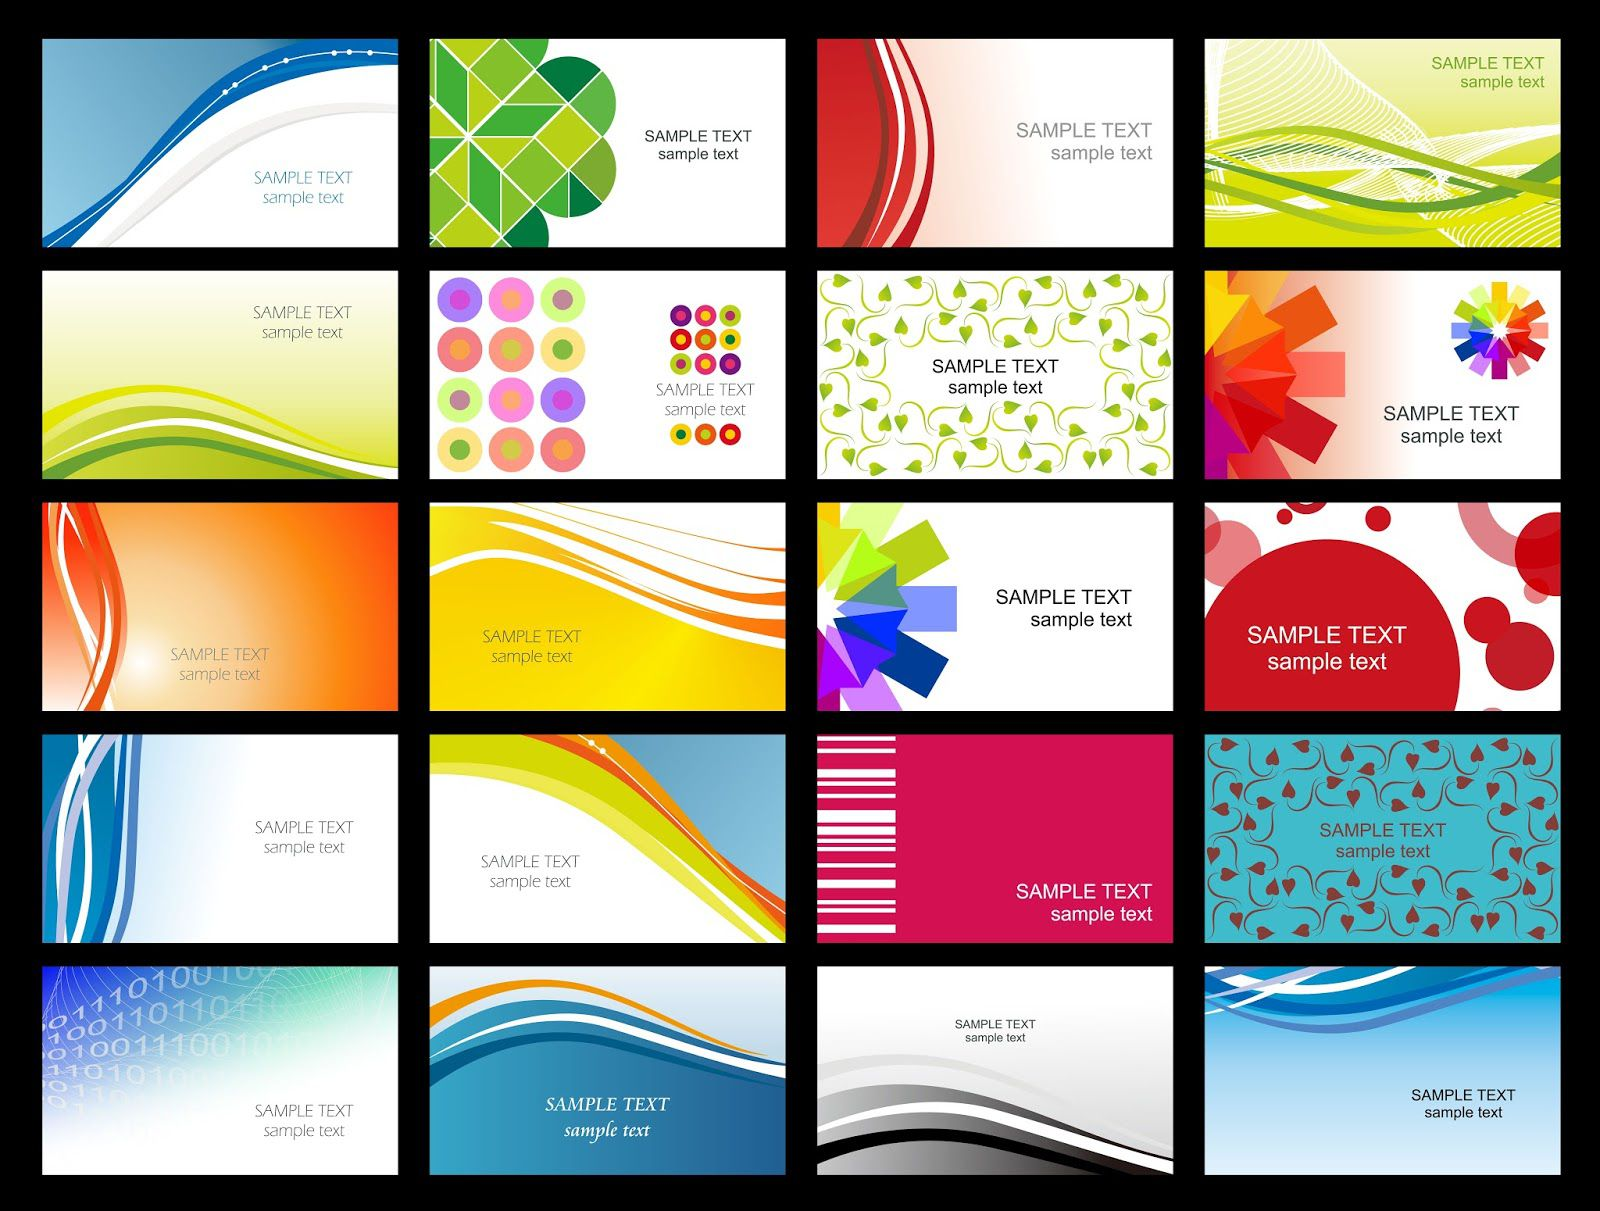 008 Breathtaking Free Download Busines Card Template Photo  Templates Blank Microsoft WordFull